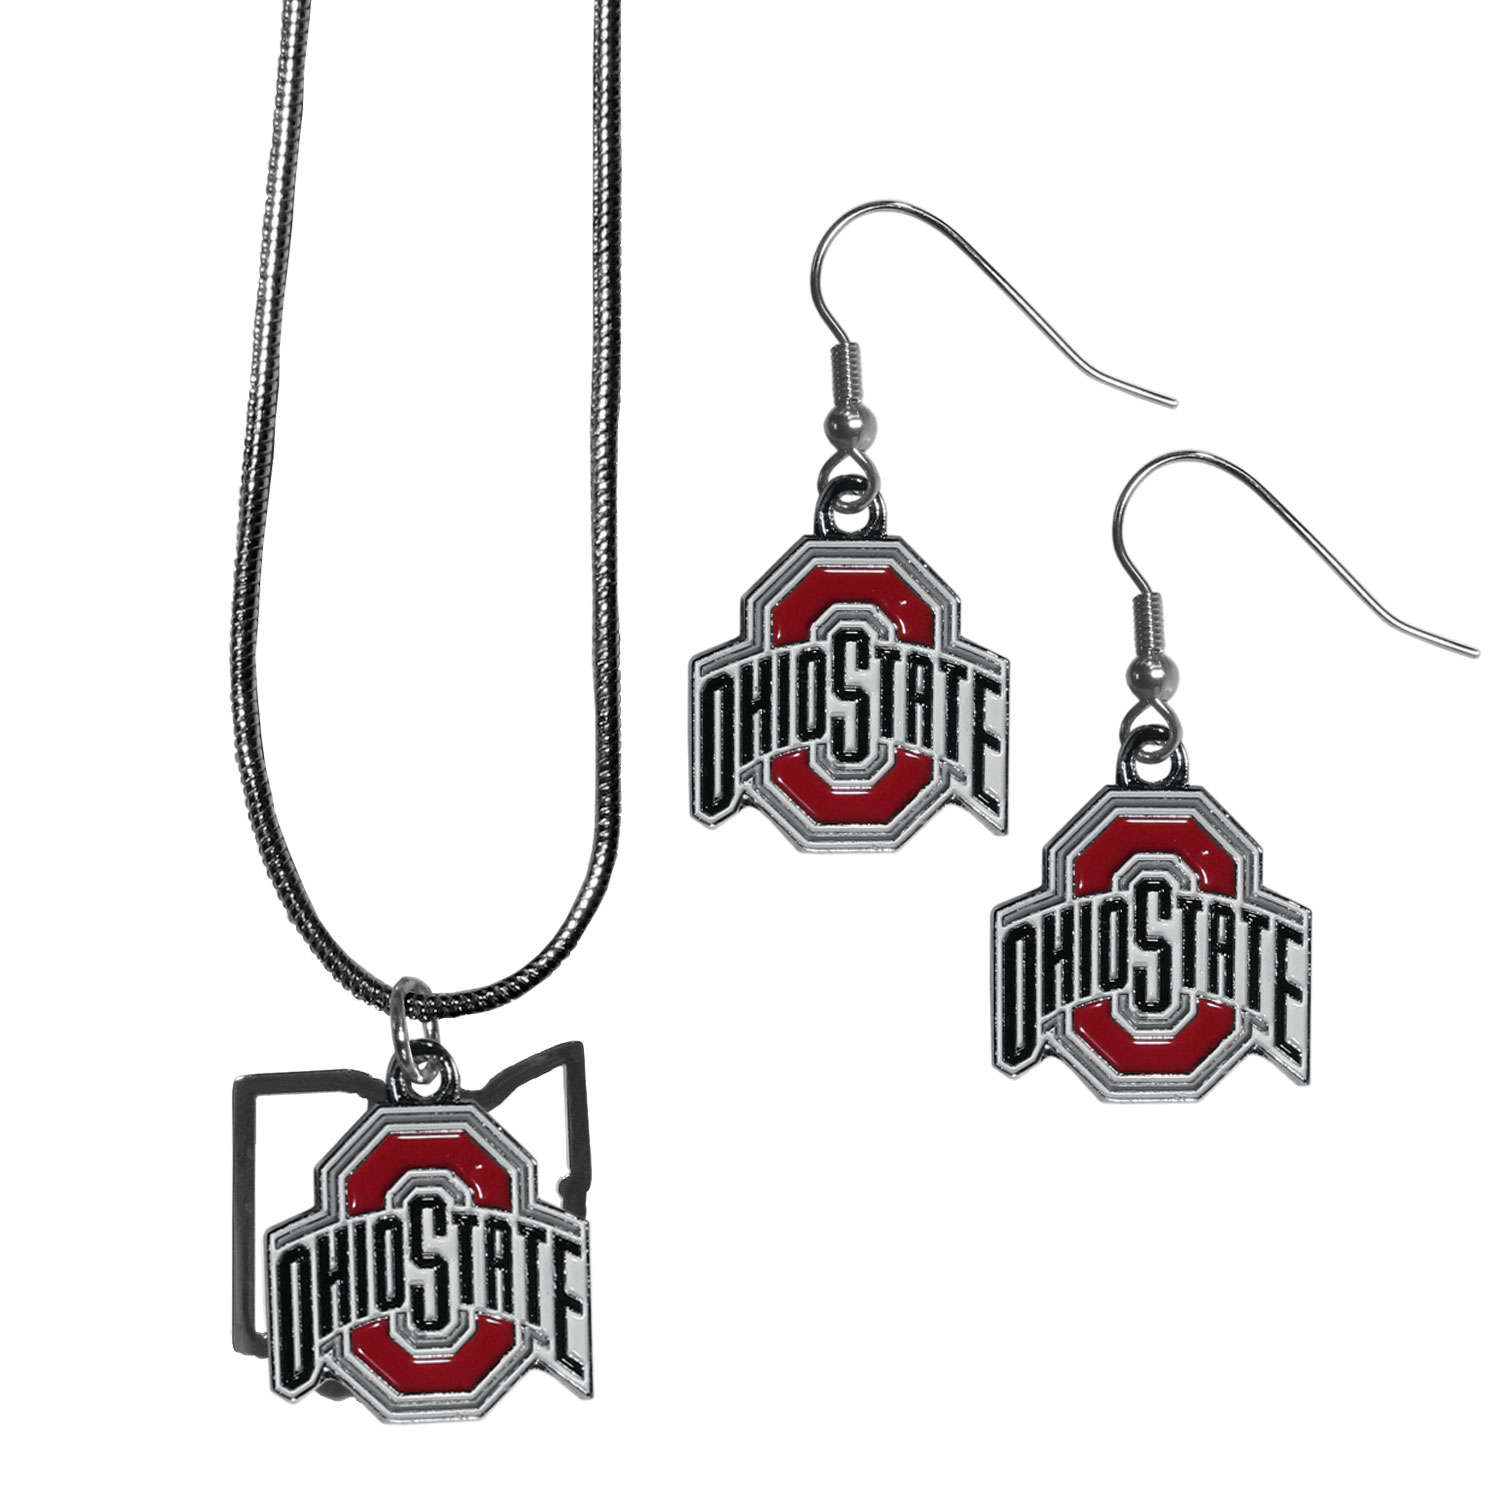 Ohio St. Buckeyes Dangle Earrings and State Necklace Set - Get in on the trend! State themes are a trend that just keeps getting more popular and this jewelry set takes the state style and give it a sporty twist with a Ohio St. Buckeyes necklace that features an Arizona state outline charm paired with a beautiful team charm and matching team charm dangle earrings. The earrings feature hypoallergenic fishhook posts that are nickel free.